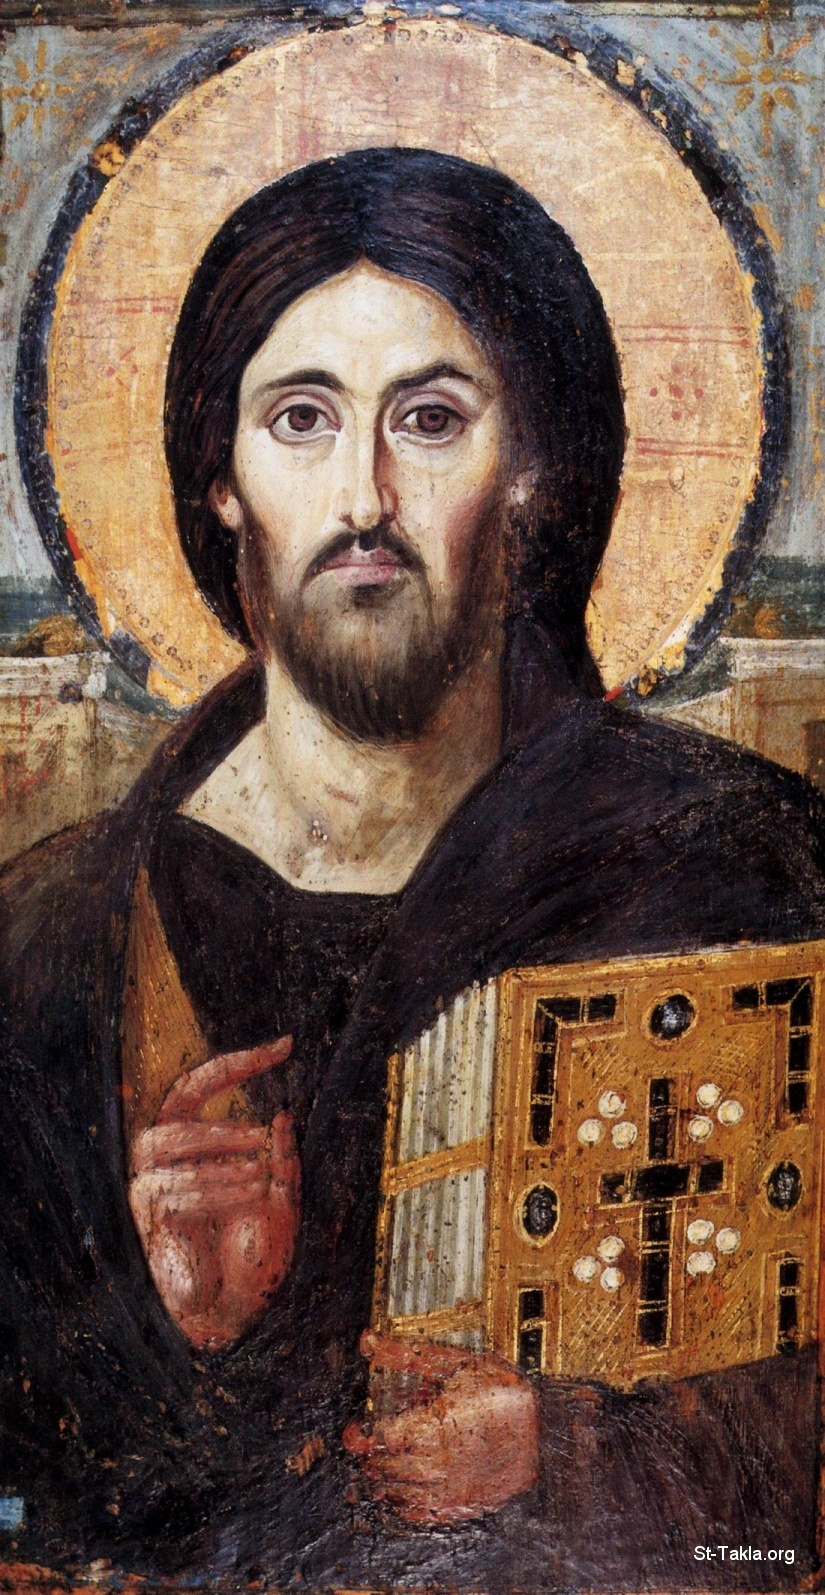 St-Takla.org Image: The oldest known icon of Christ Pantocrator, encaustic on panel (Sinai, Egypt, Saint Catherine's Monastery) ���� �� ���� ������ ����: ���� ������ �� ������ ���� ����� ������ ������ ���� ������ ����� ����ɡ ��ѡ ��� ���� ������ �����